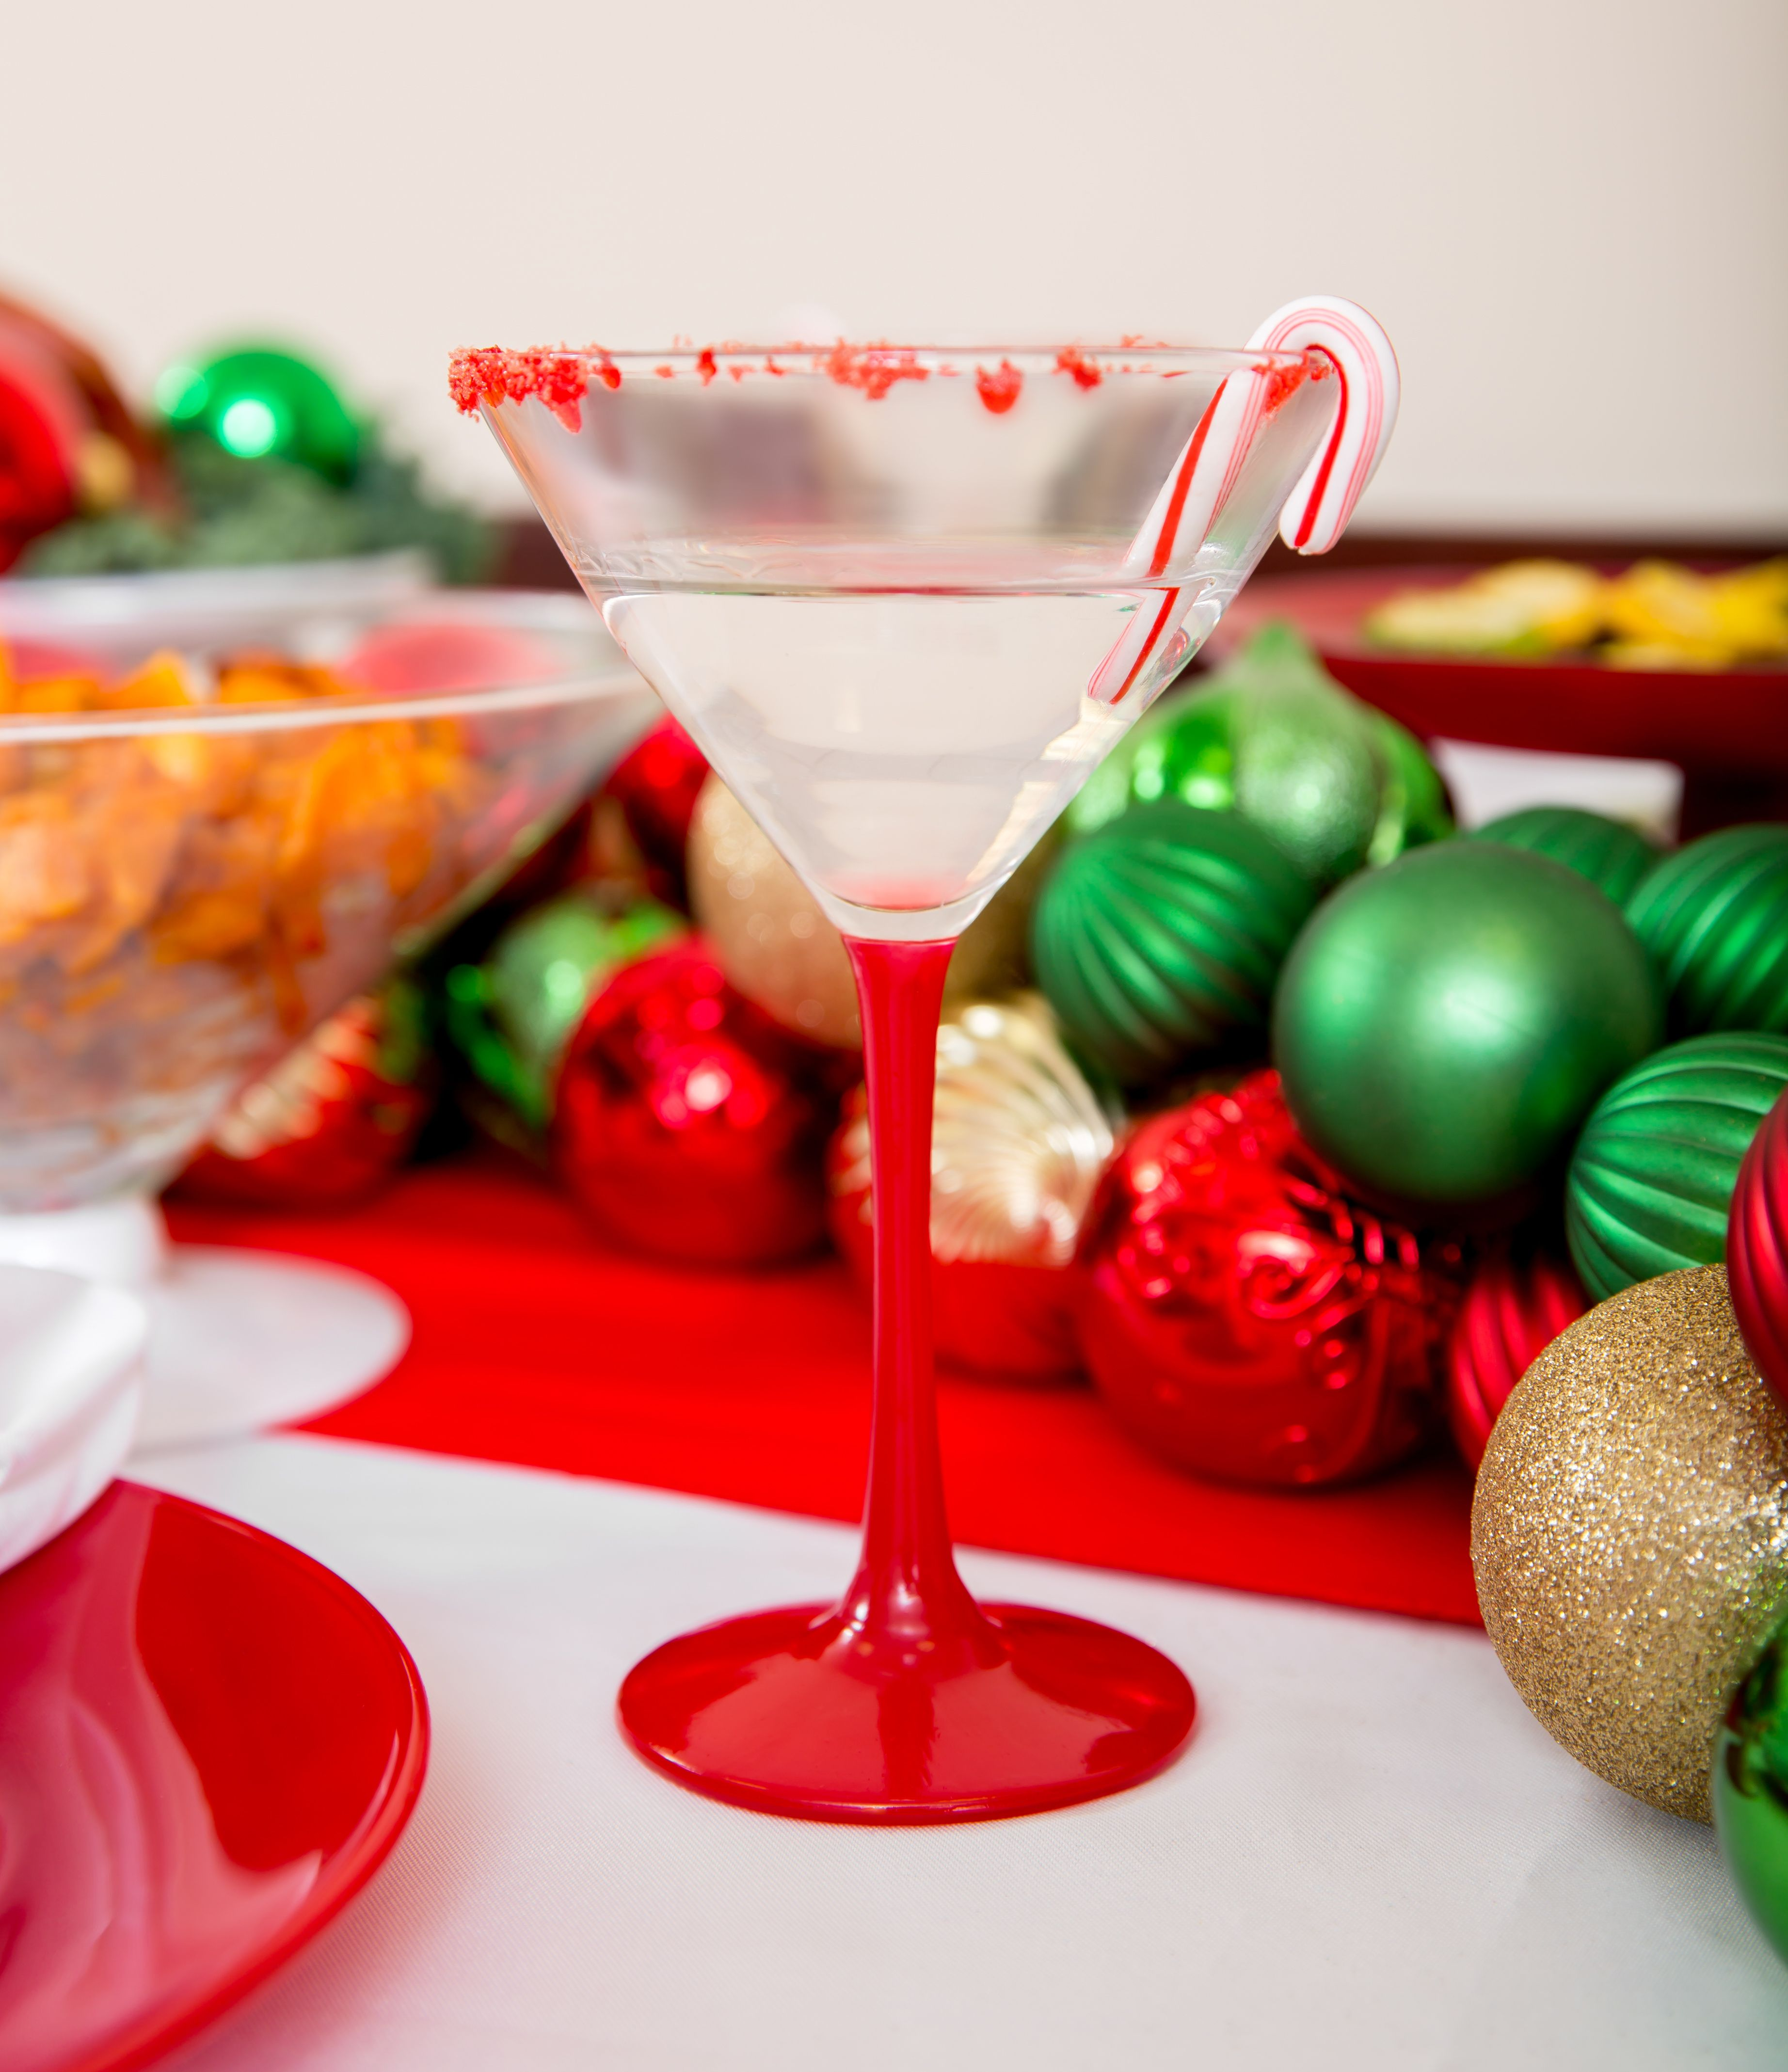 A Candy Cane Martini in our Red Martini Glass. A fabulous Christmas Tabletop from The Happy Hostess! Check out our blog for Christmas Party Ideas and tips! www.thehappyhostessonline.com